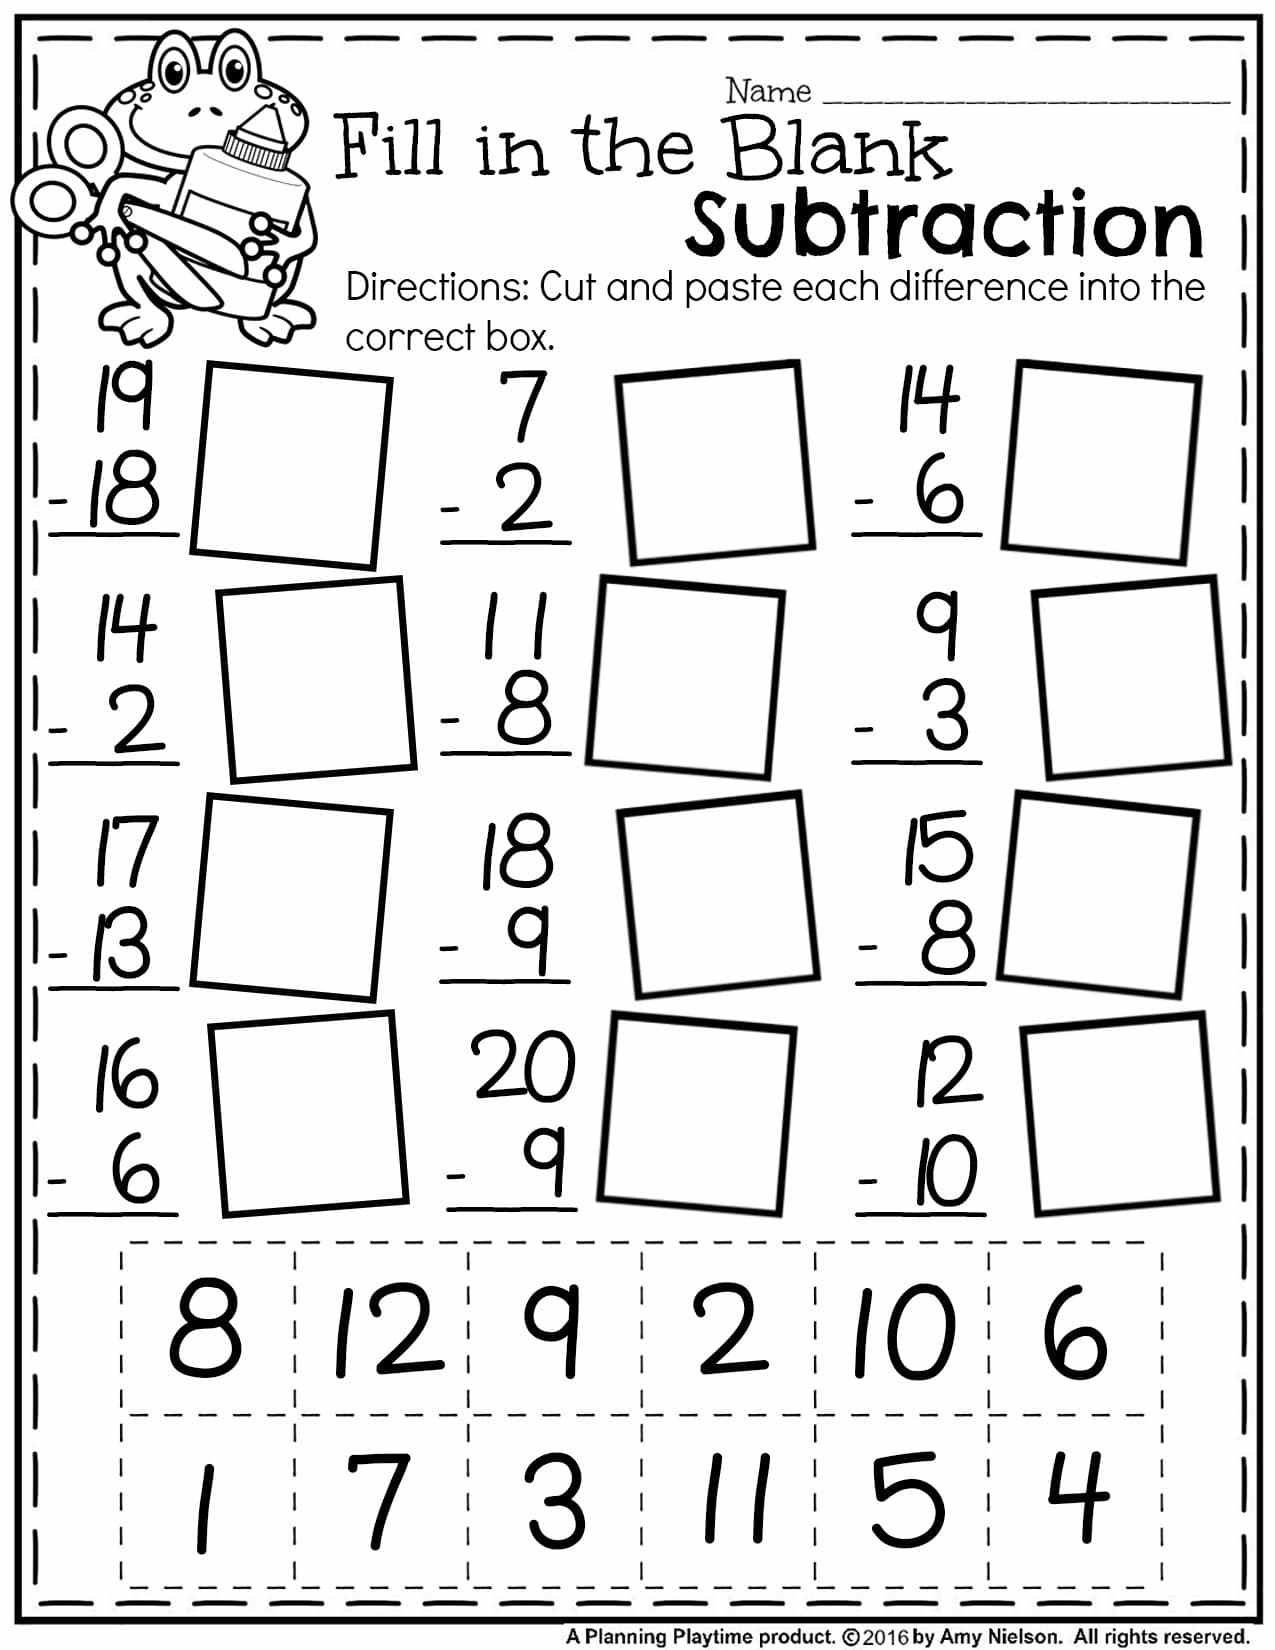 5 Free Math Worksheets First Grade 1 Subtraction Single Digit Subtraction Times Table 1st Grade Math Worksheets Free Math Worksheets 2nd Grade Math Worksheets